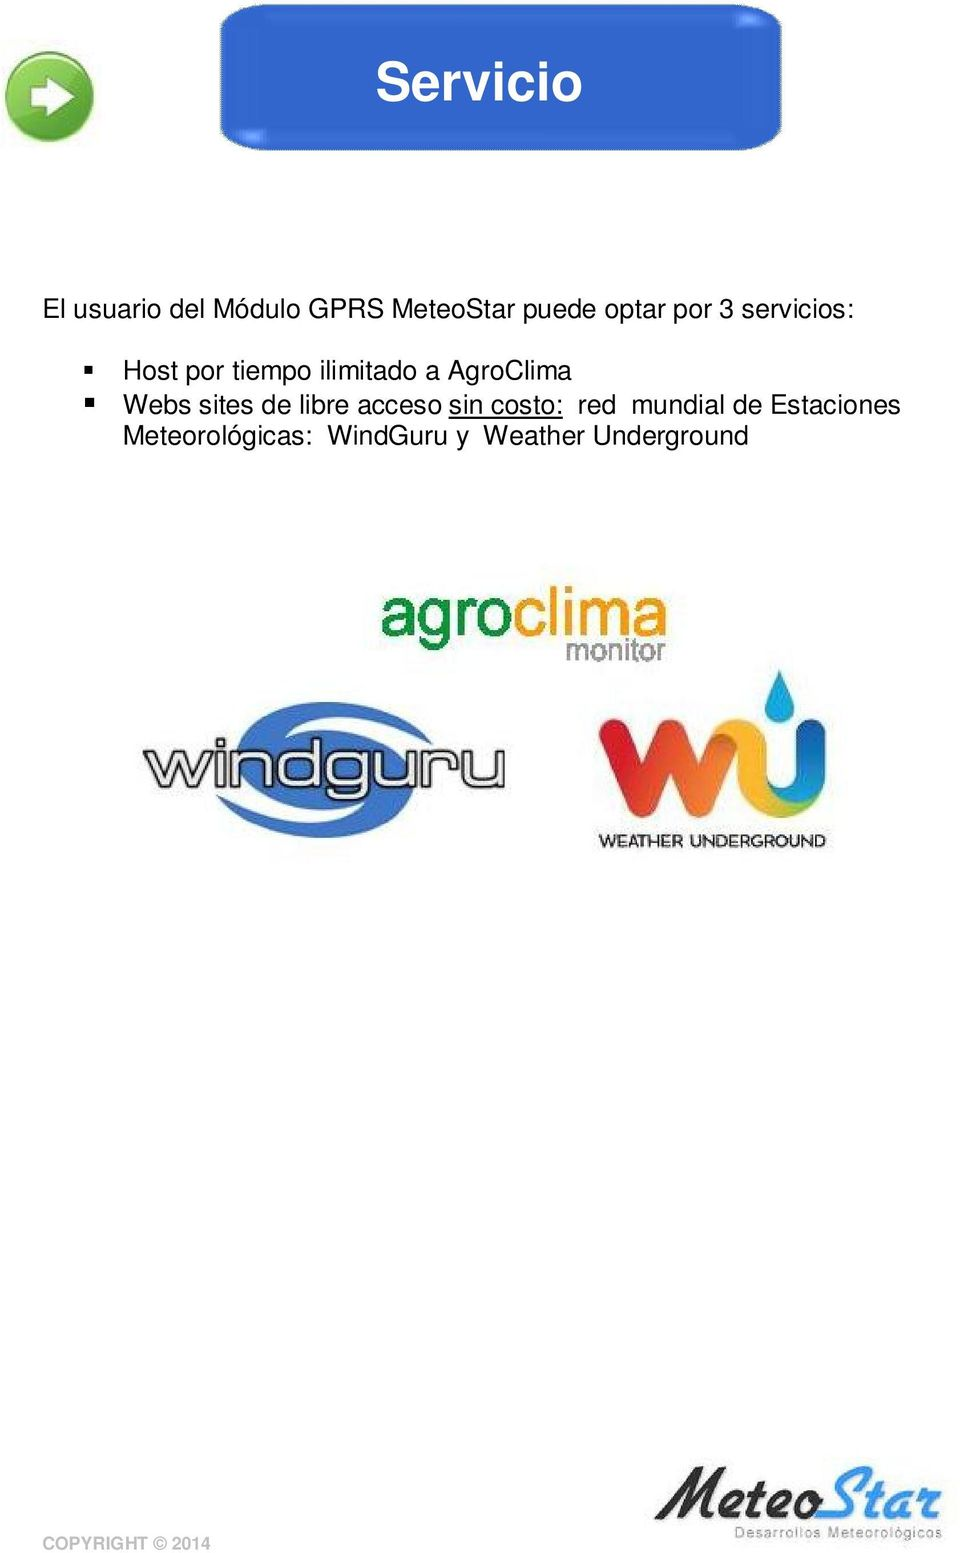 AgroClima Webs sites de libre acceso sin costo: red